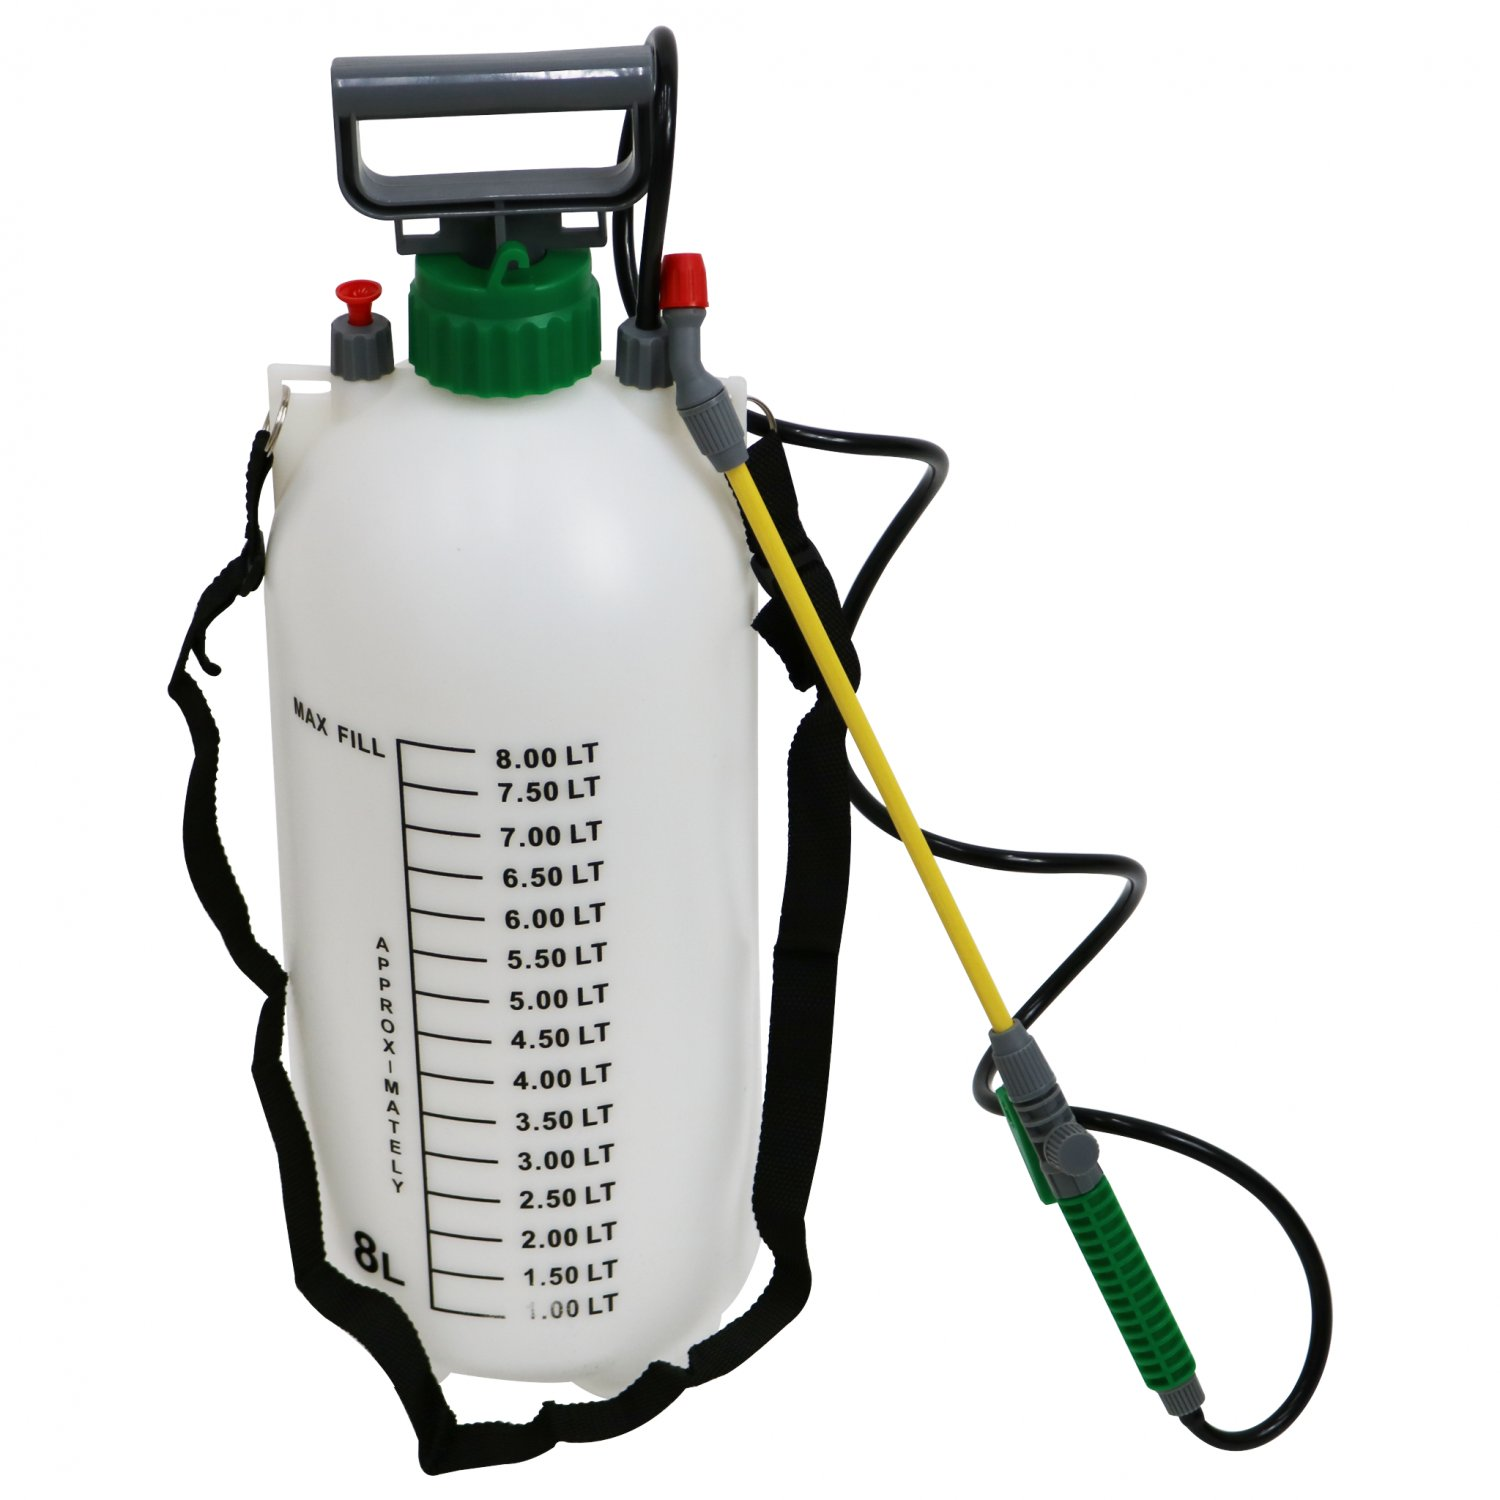 8L 8 Litre Pump Action Pressure Crop Garden Weed Sprayer